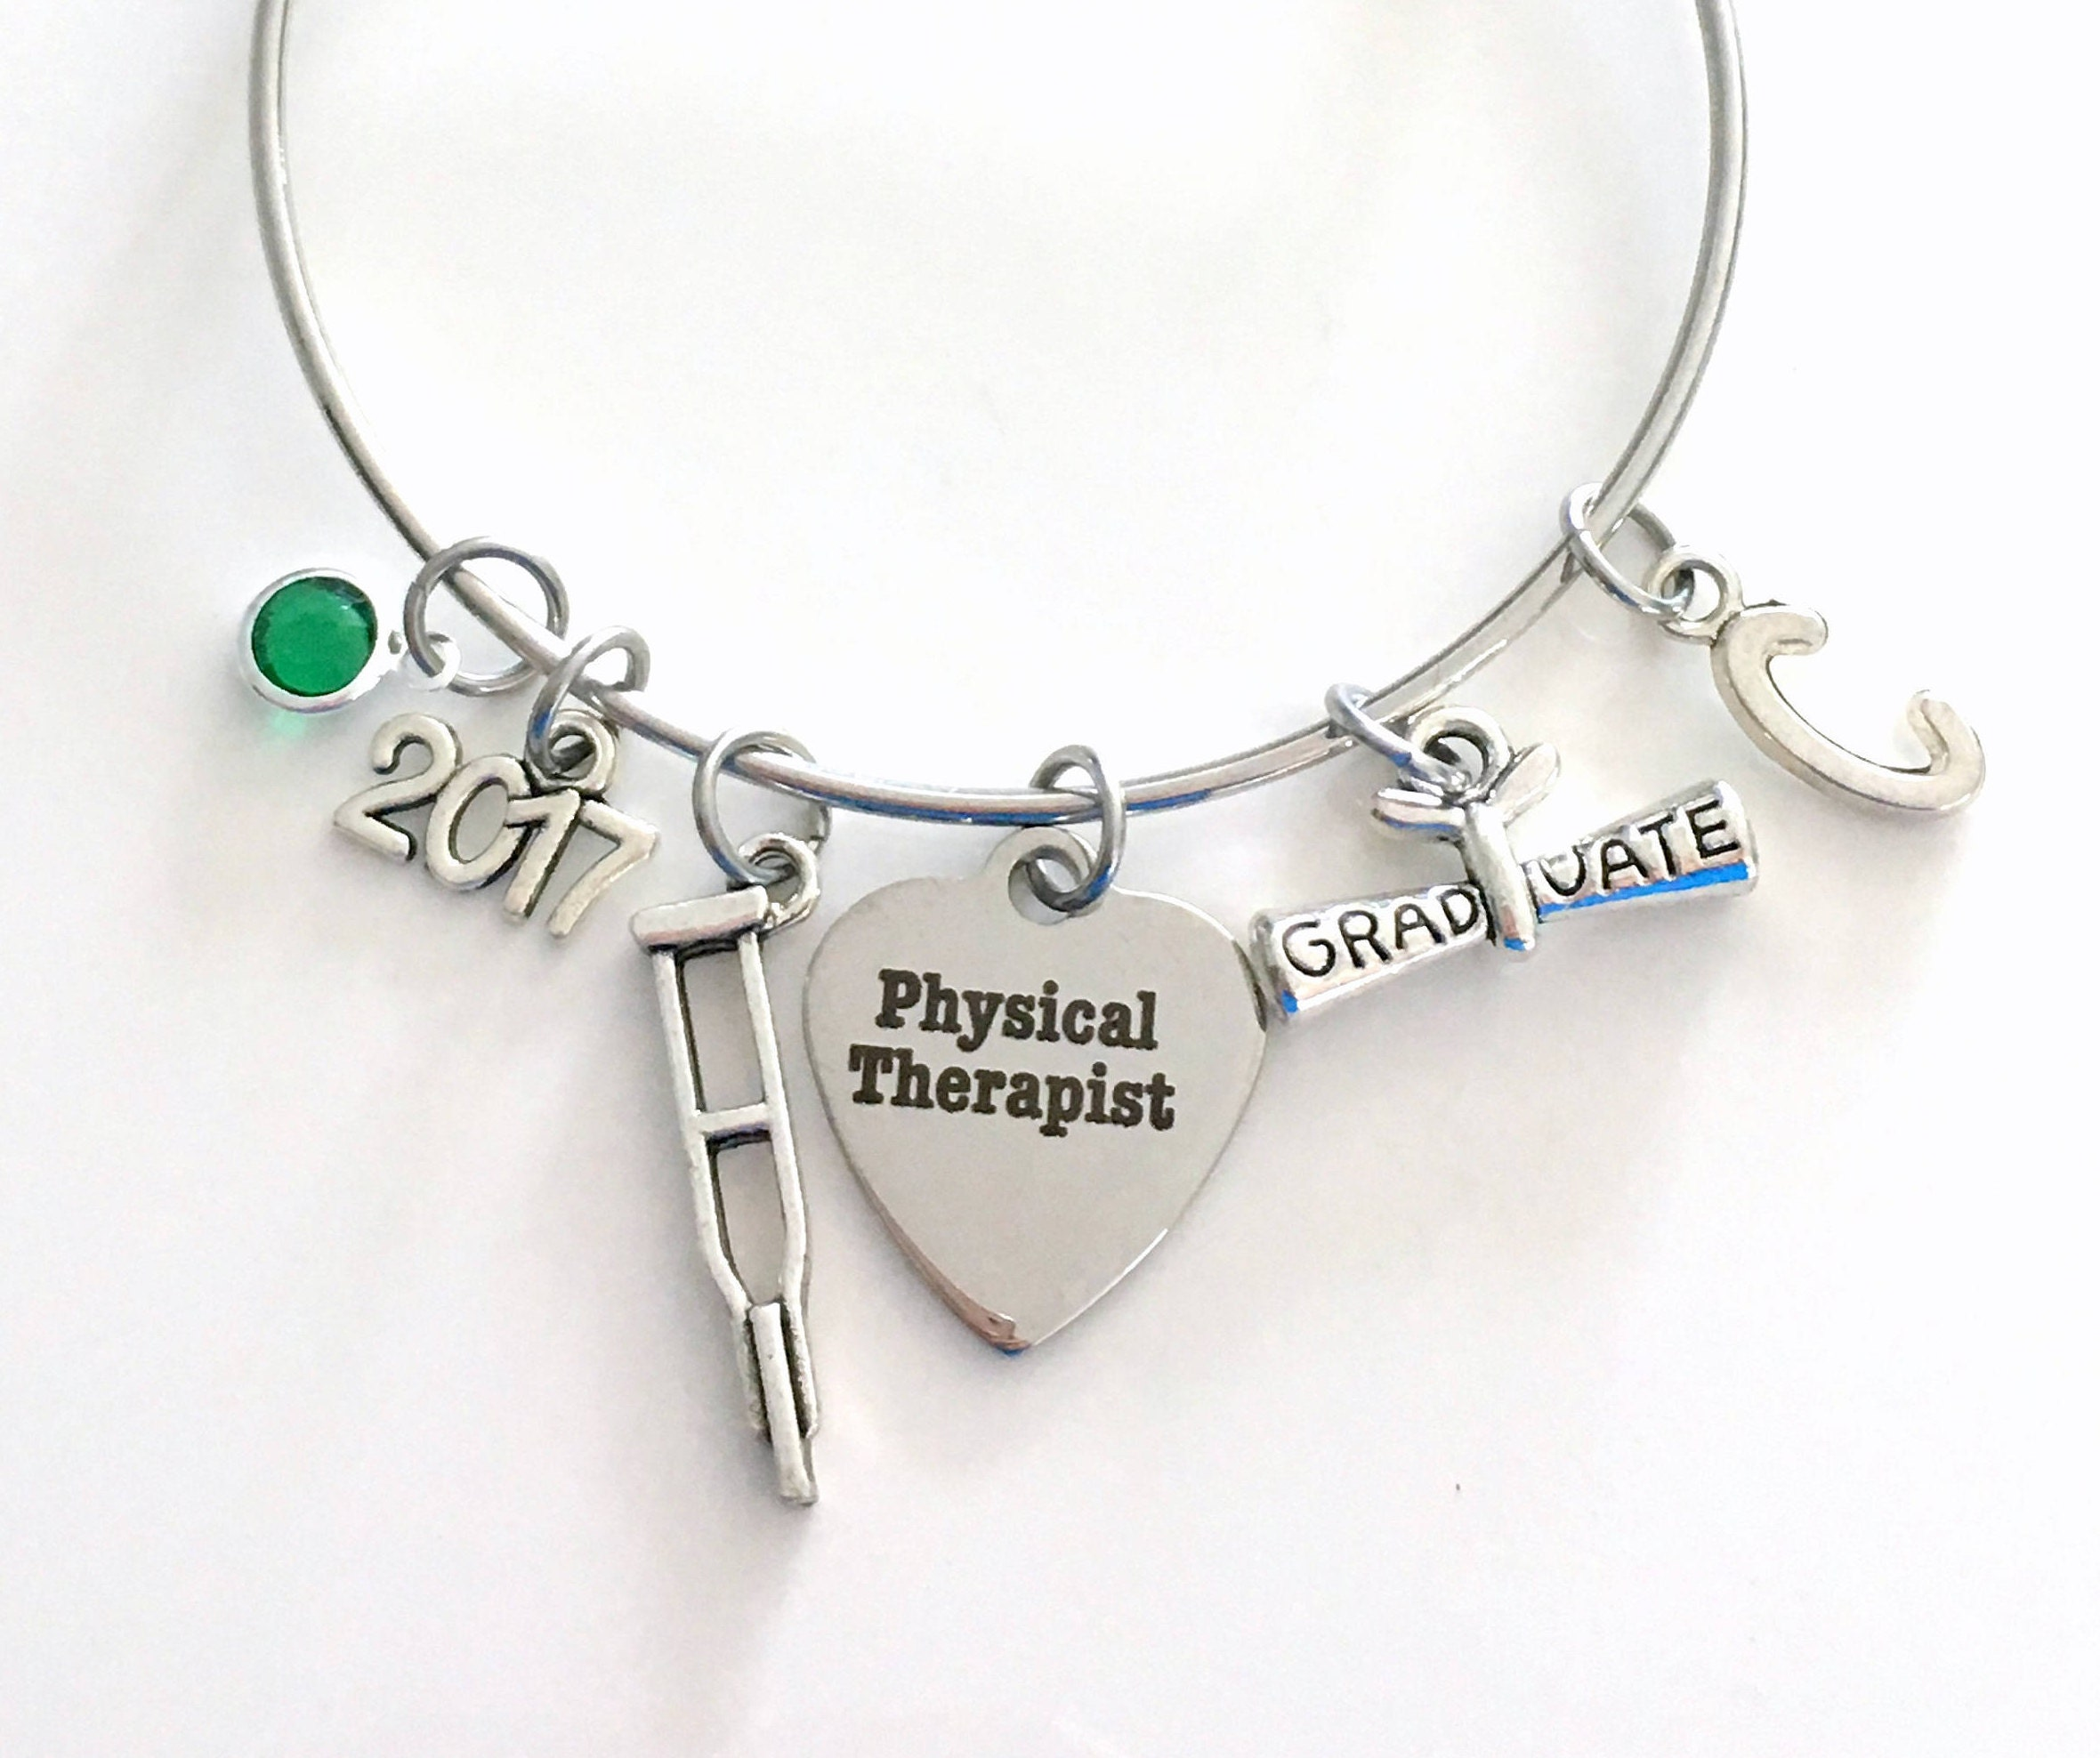 ro bracelet registered graduation lola jewelryd airbrush nurse graduate product charm new a